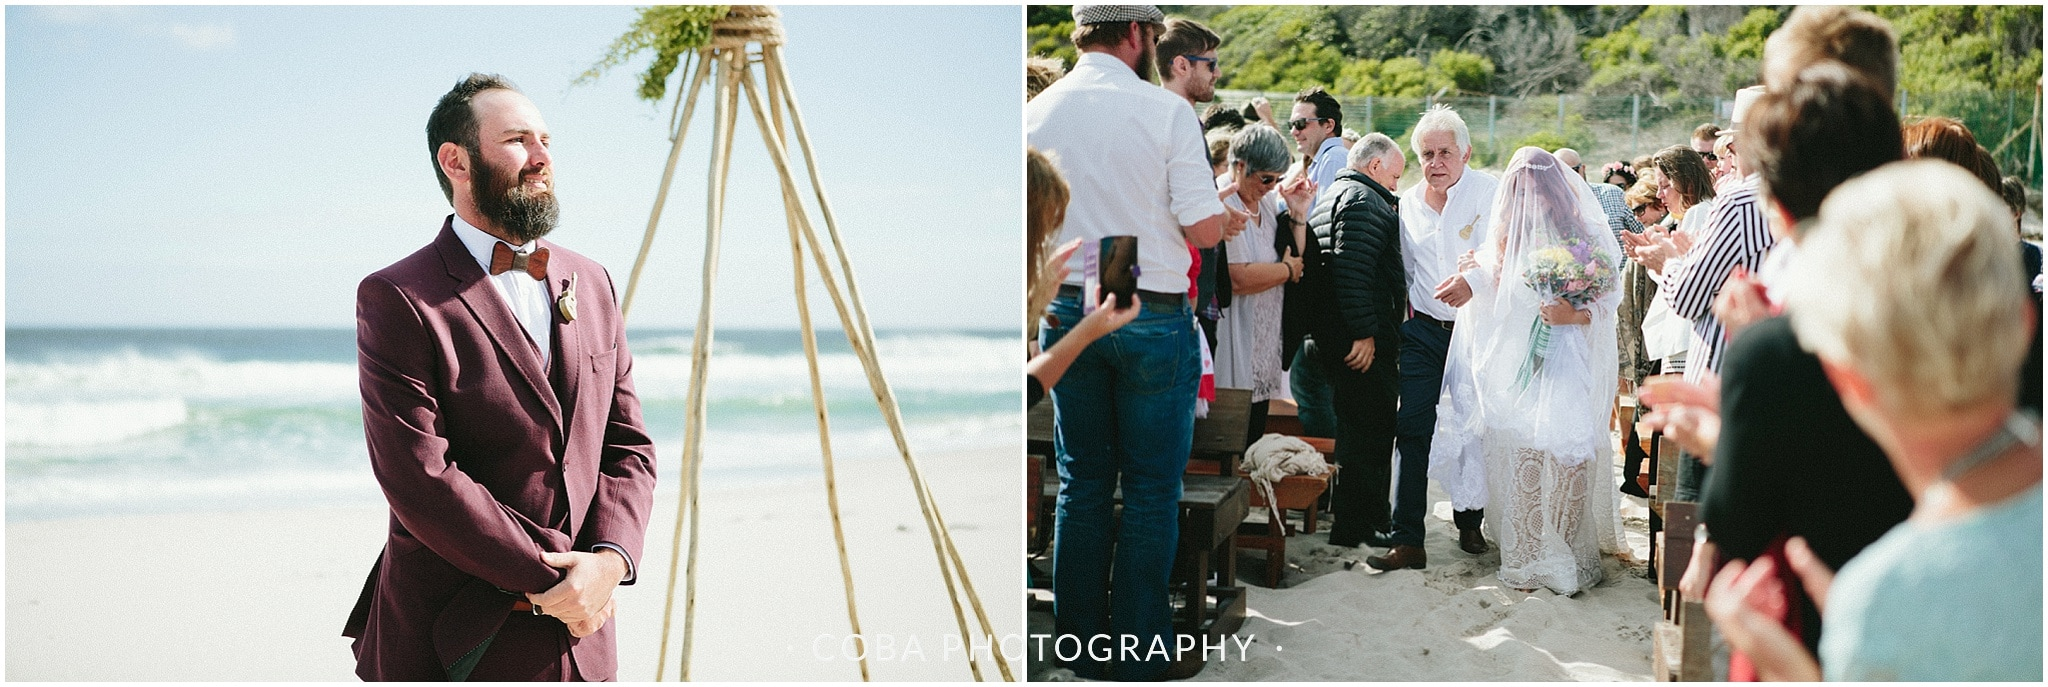 Conrad & Mareli - Boho beach wedding - ceremony (3)